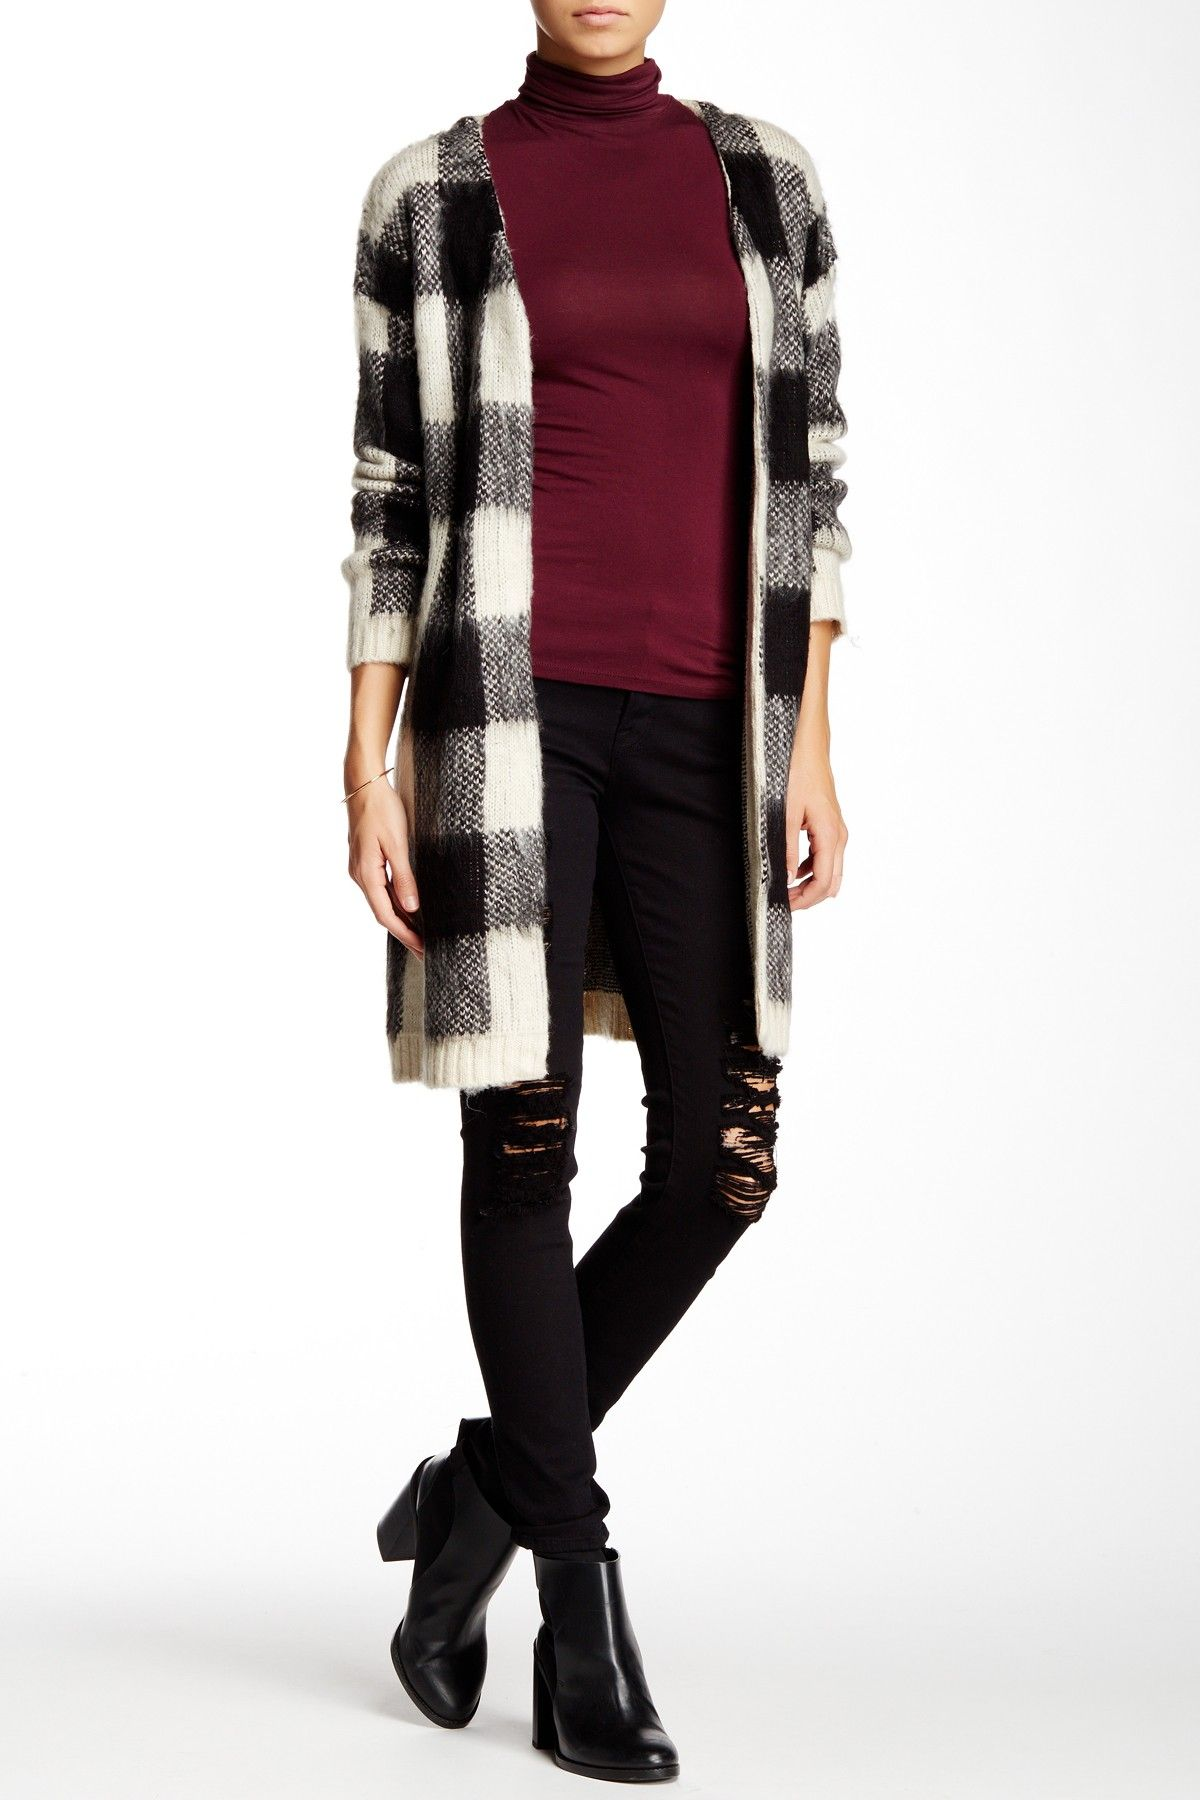 Buffalo Plaid Sweater Coat by Cliche on @nordstrom_rack Sponsored by Nordstrom Rack.